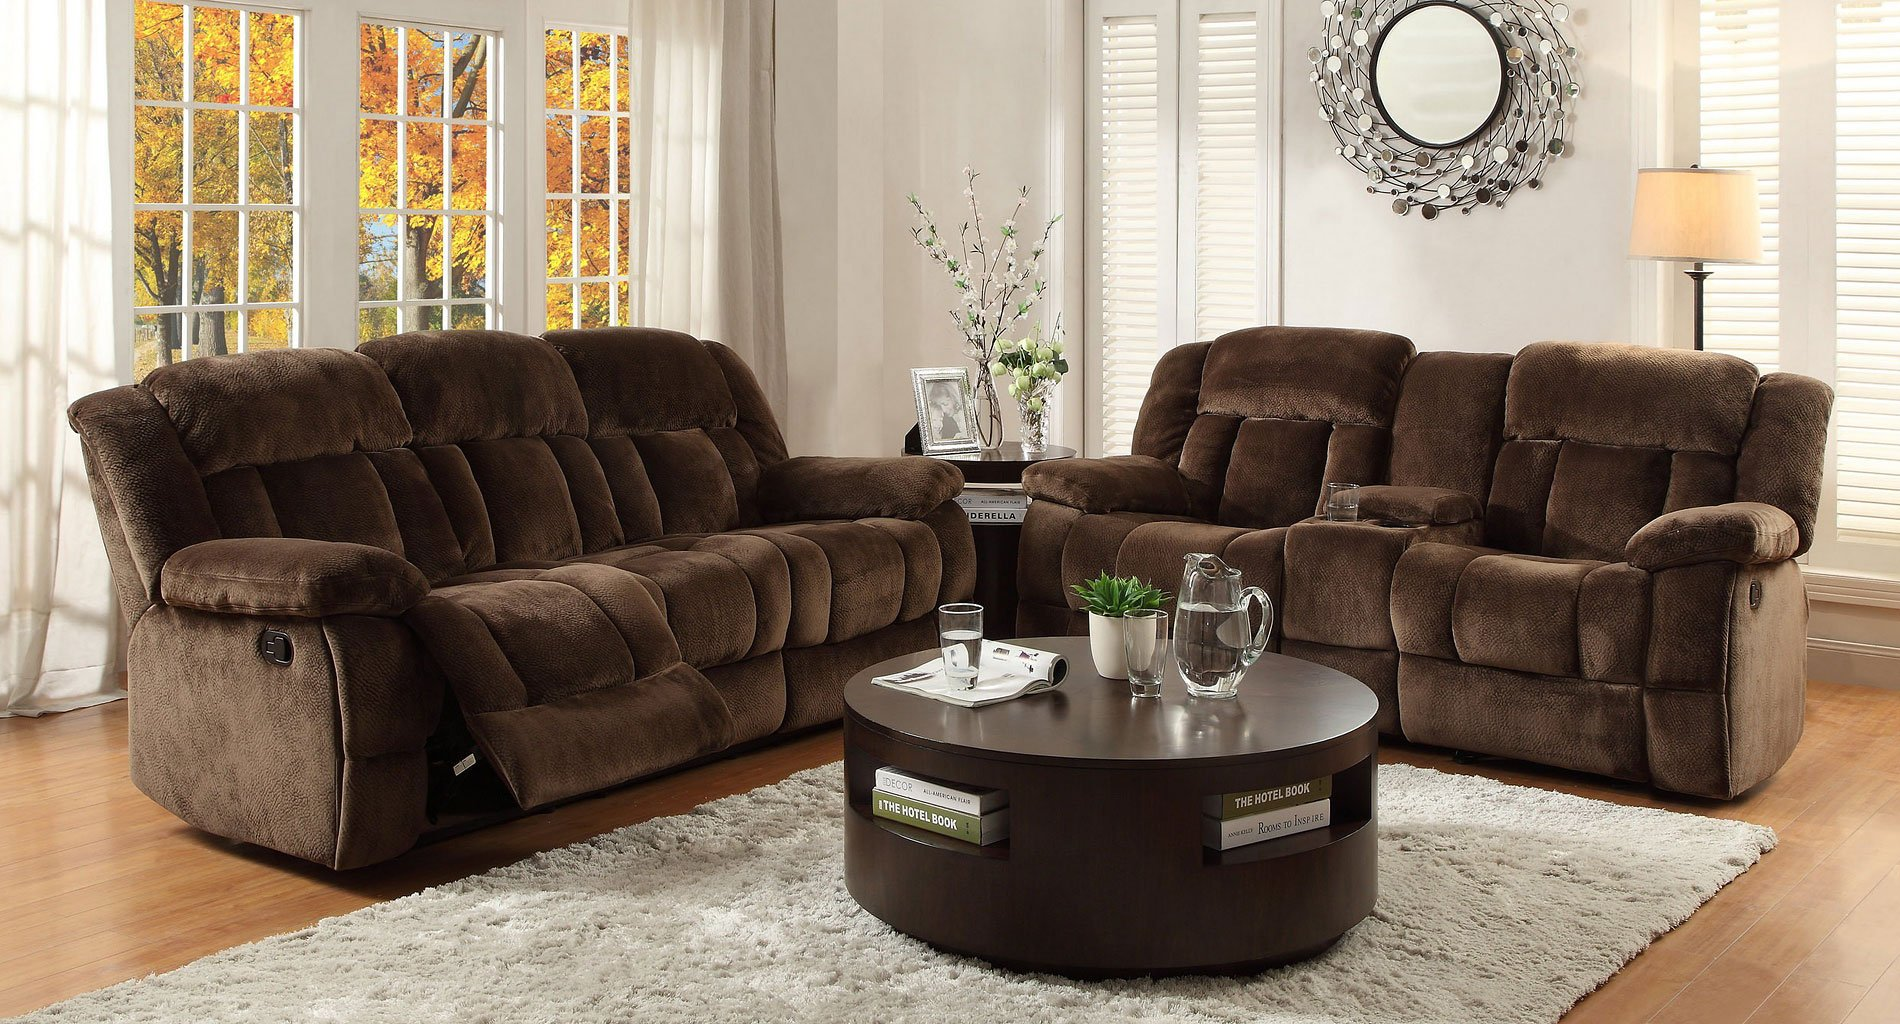 Living Room Furniture: Laurelton Reclining Living Room Set (Chocolate)